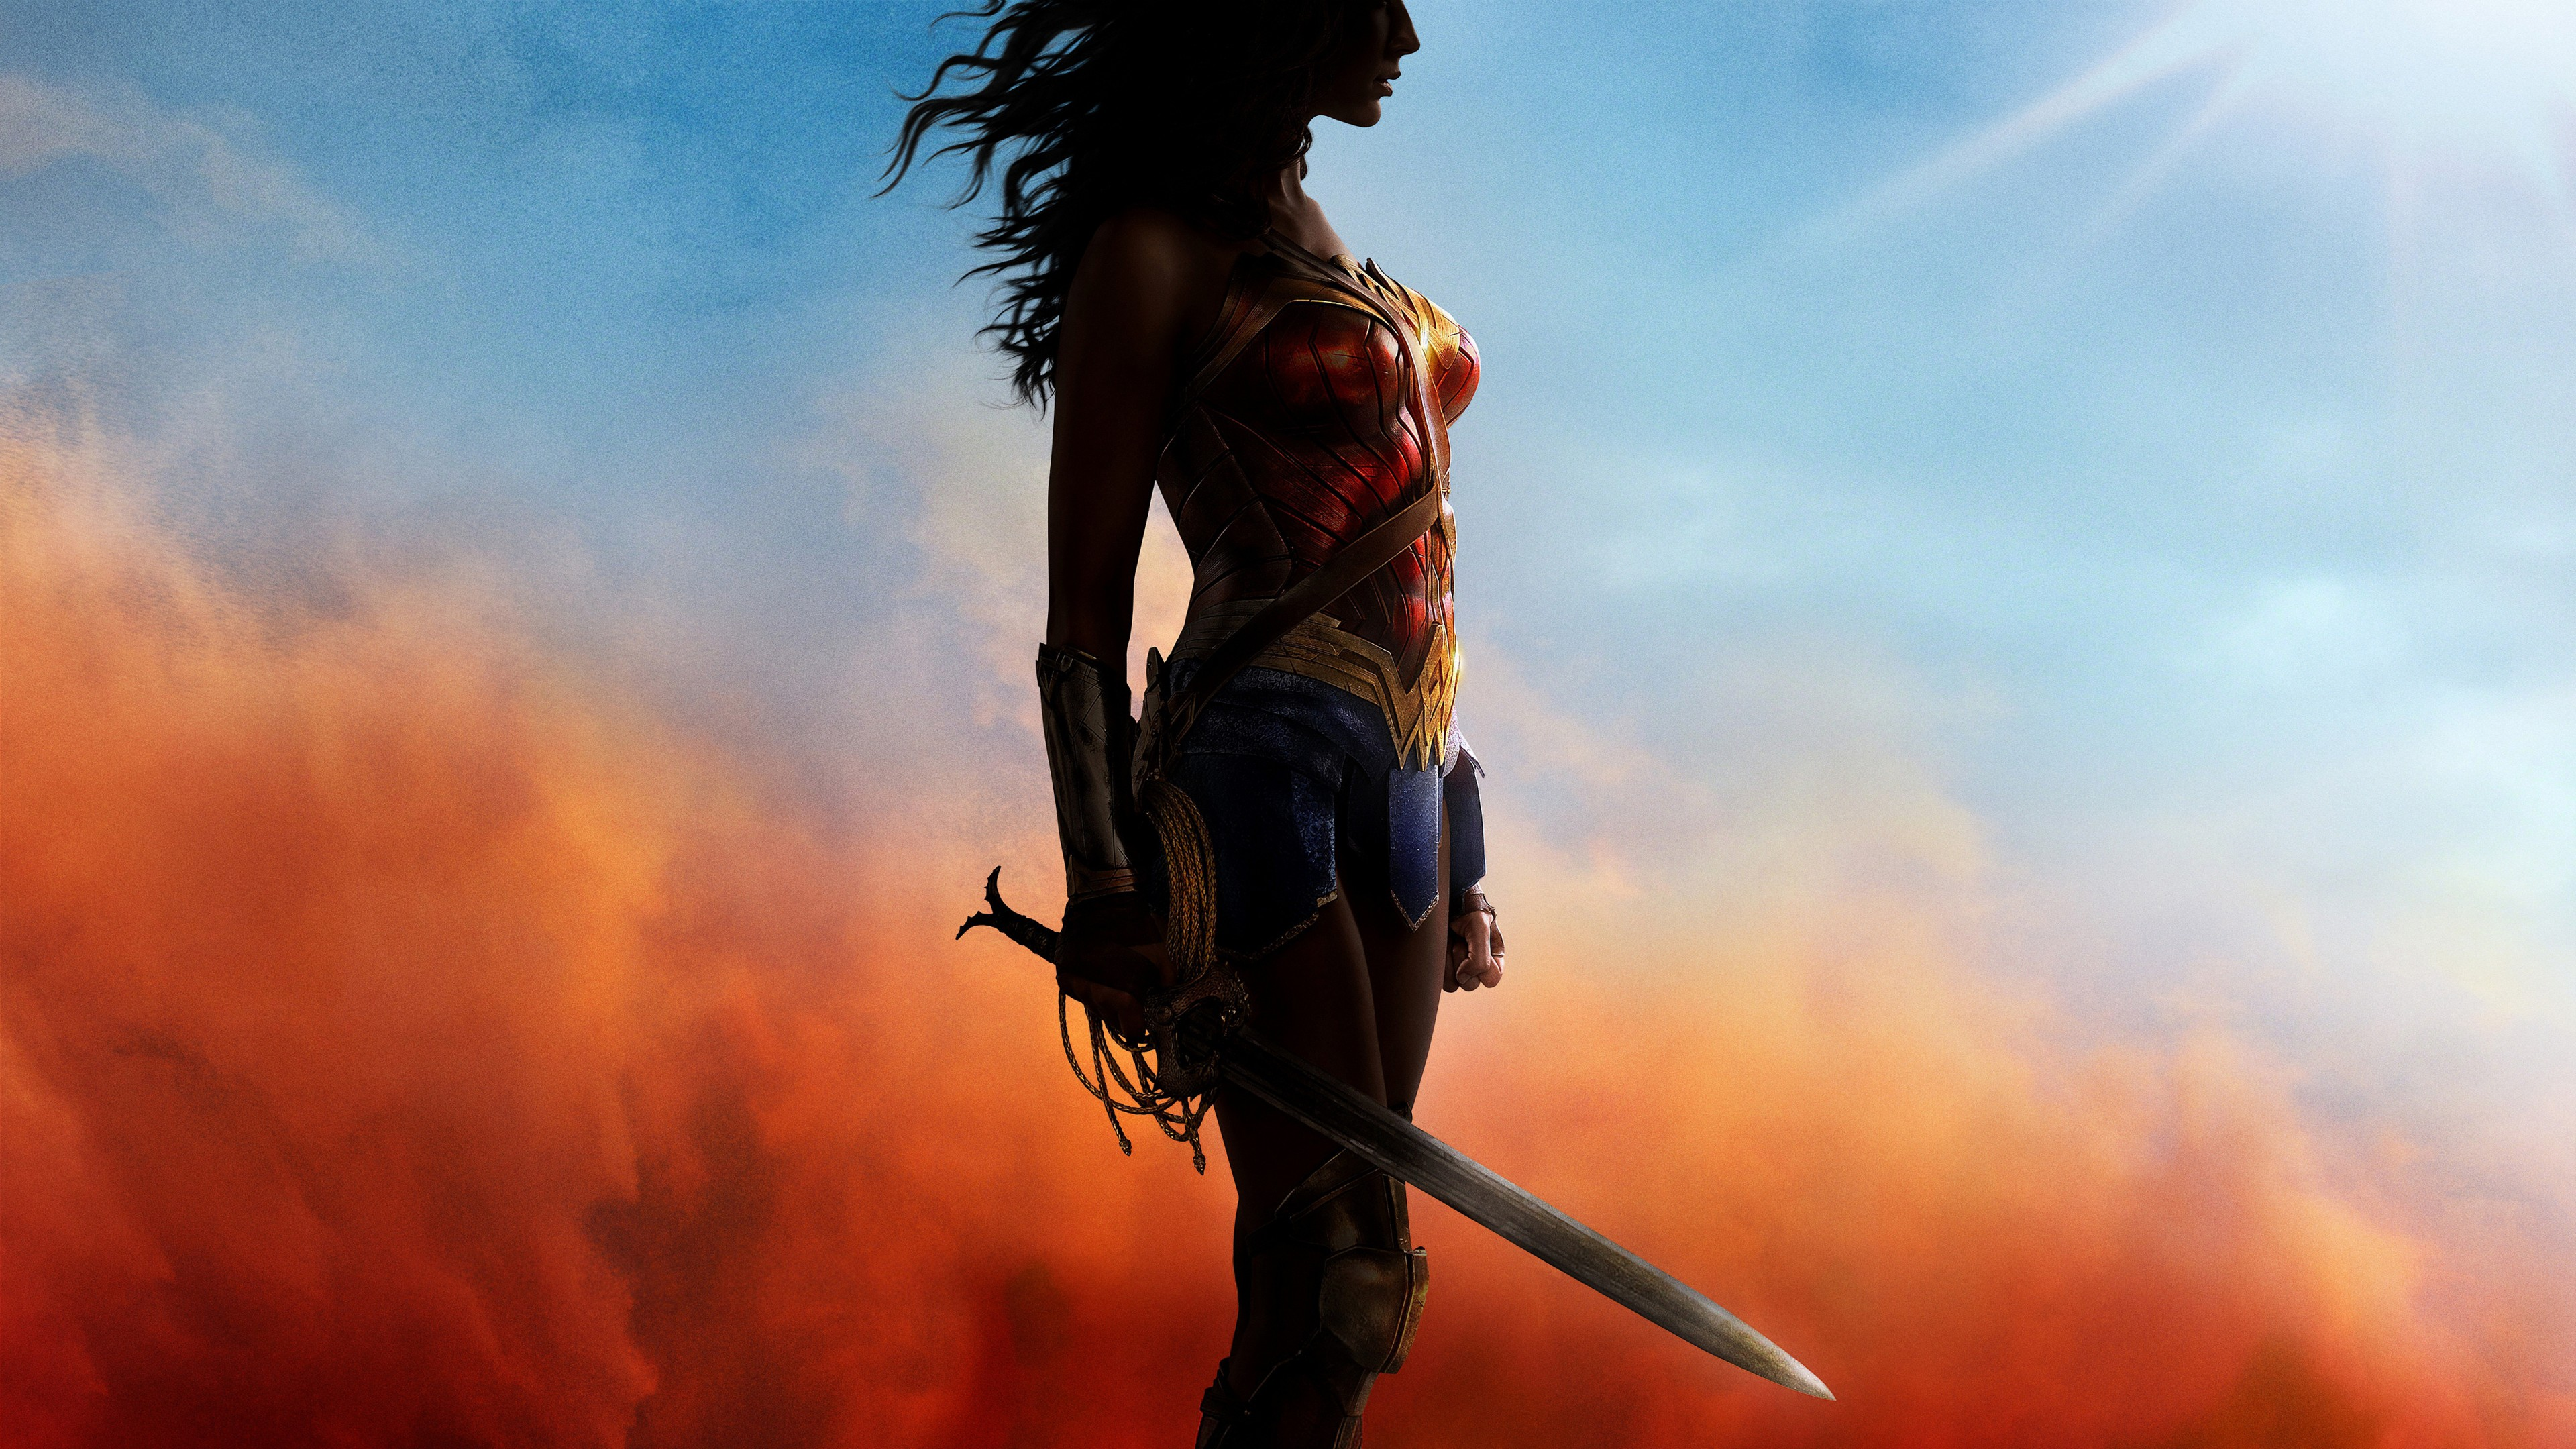 Wallpaper Wonder Woman Hd 4k 8k Movies 9526: Wonder Woman 4k, HD Movies, 4k Wallpapers, Images